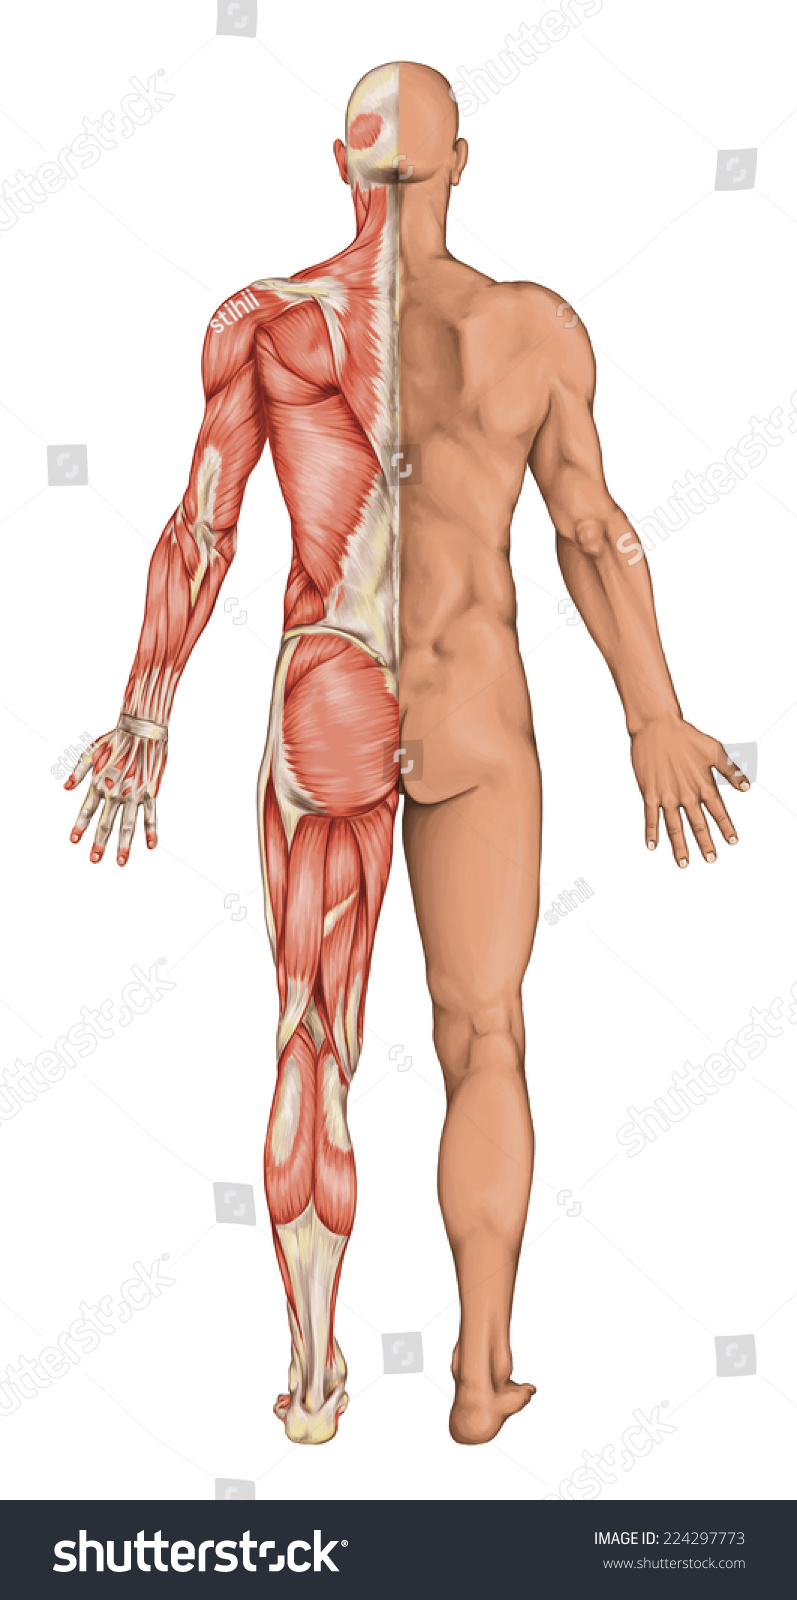 Male Anatomy Mans Anatomical Body Human Stock Illustration Royalty